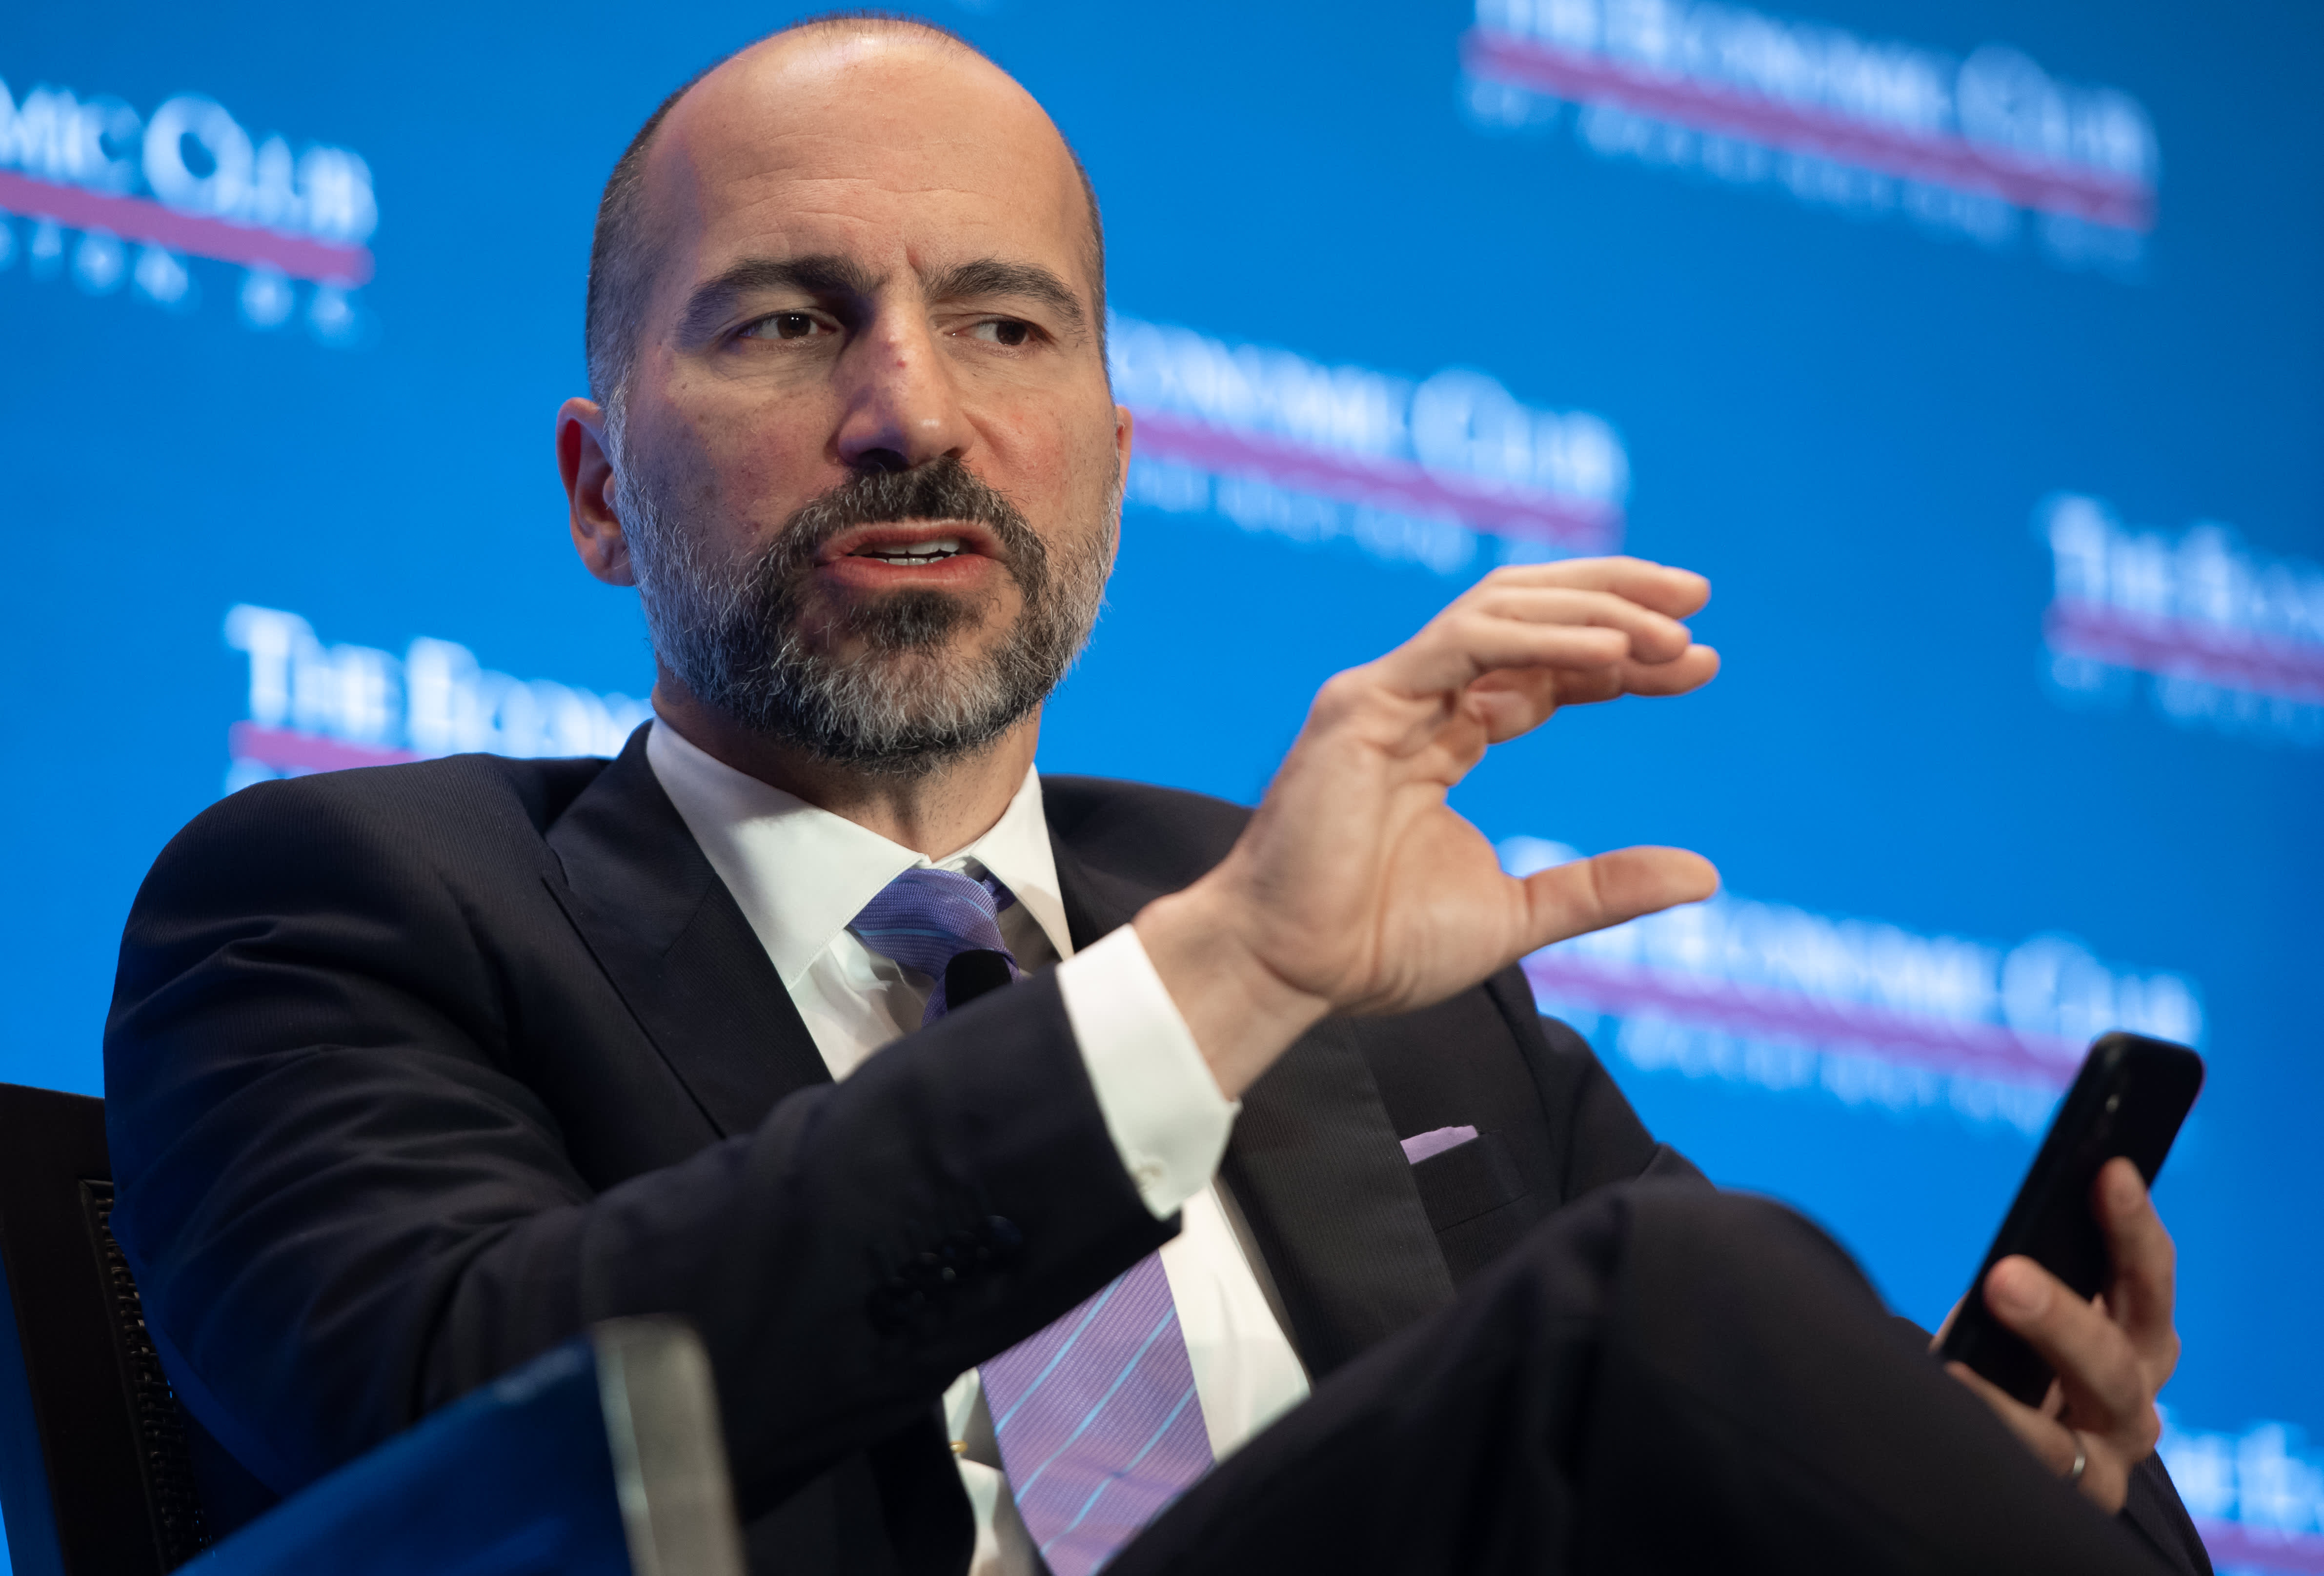 Uber CEO reveals it considered buying food delivery app Caviar before rival DoorDash did